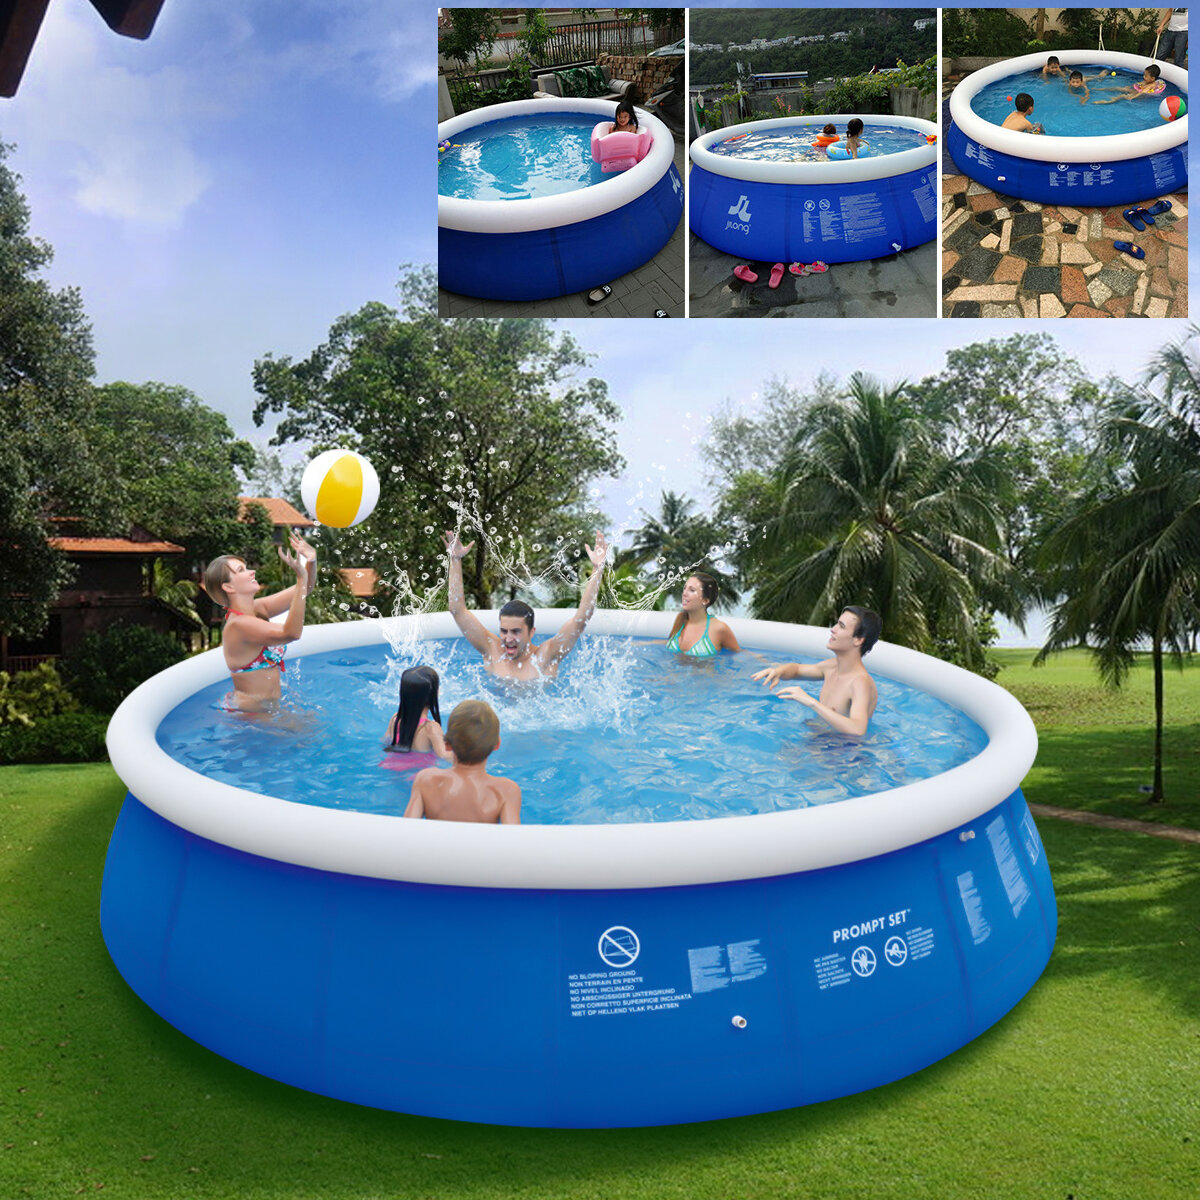 6 Size Blue Above Ground Swimming Pool Family Pool Inflatable Pool For Adults Kids